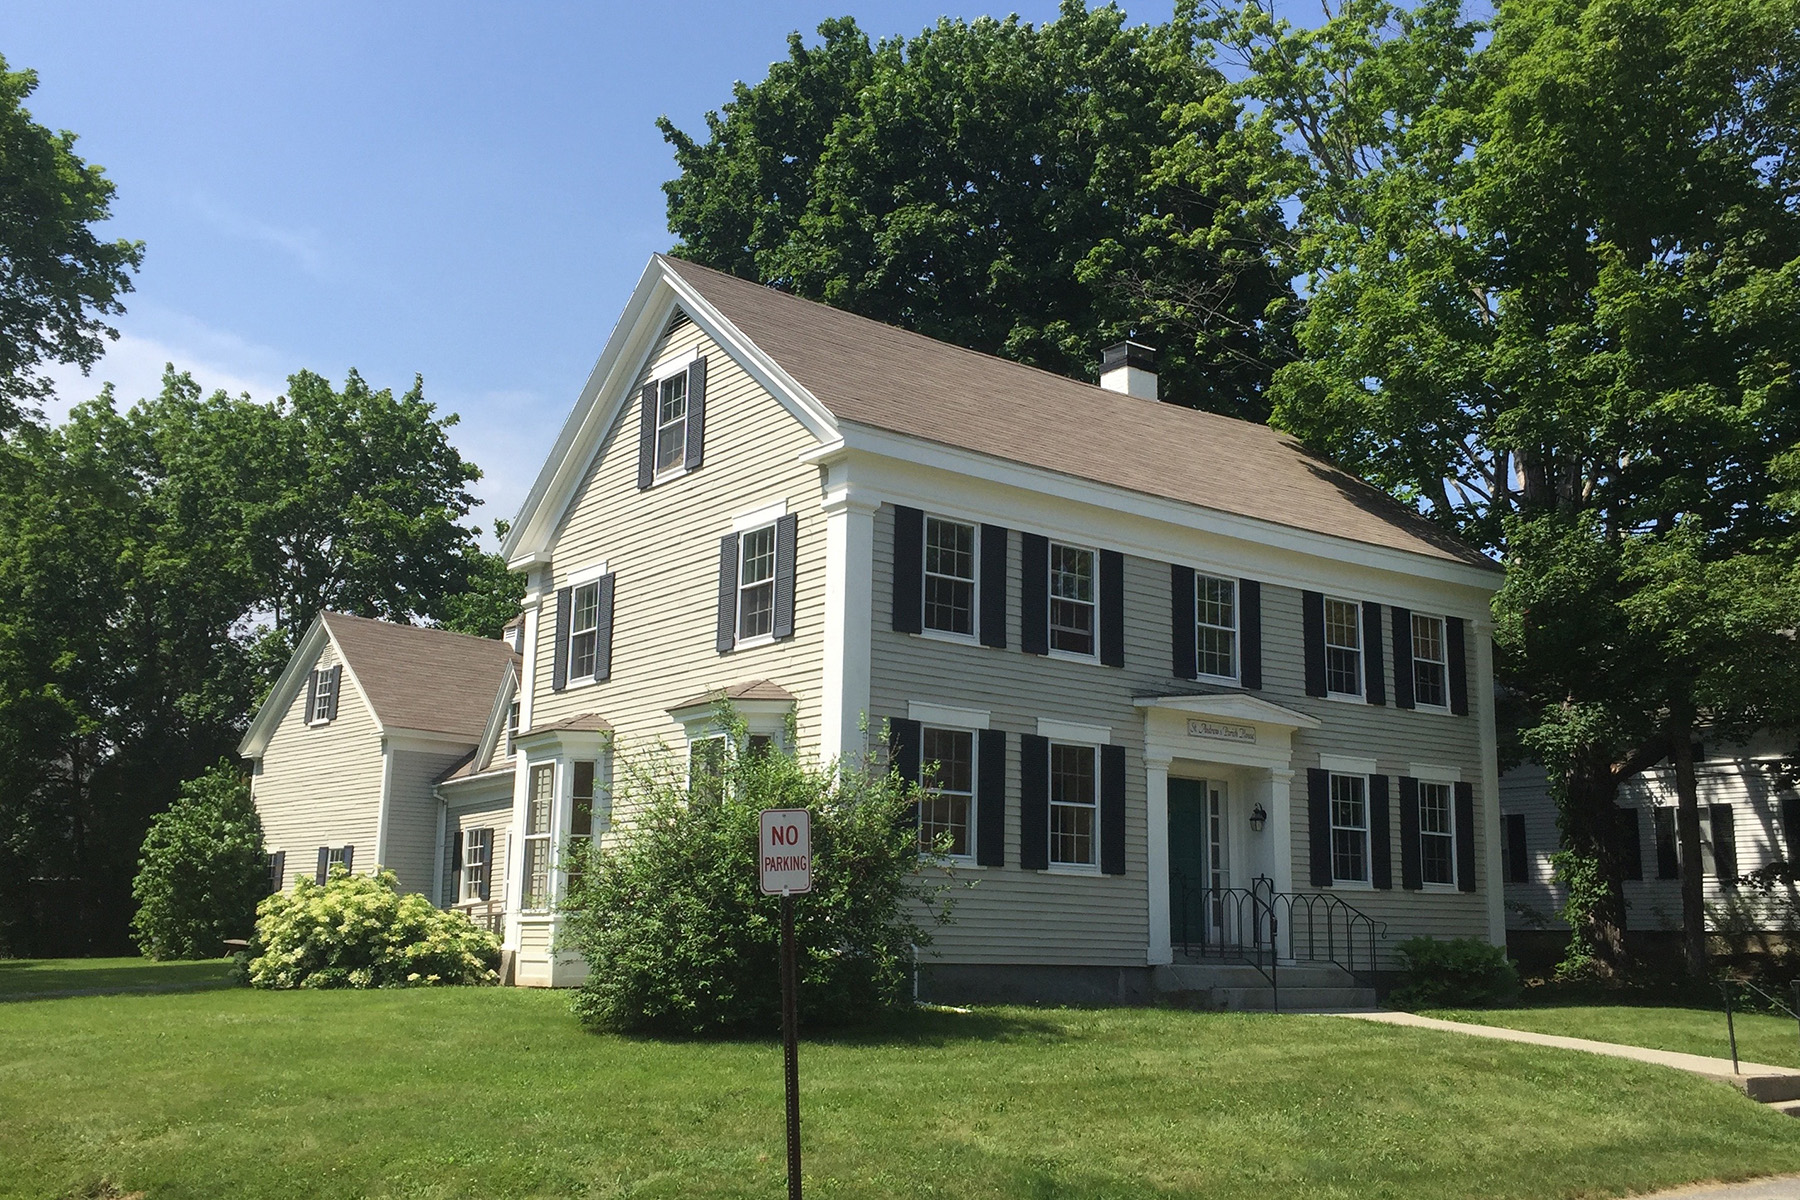 Single Family Home for Sale at 16 Glidden Street Newcastle, Maine, 04553 United States